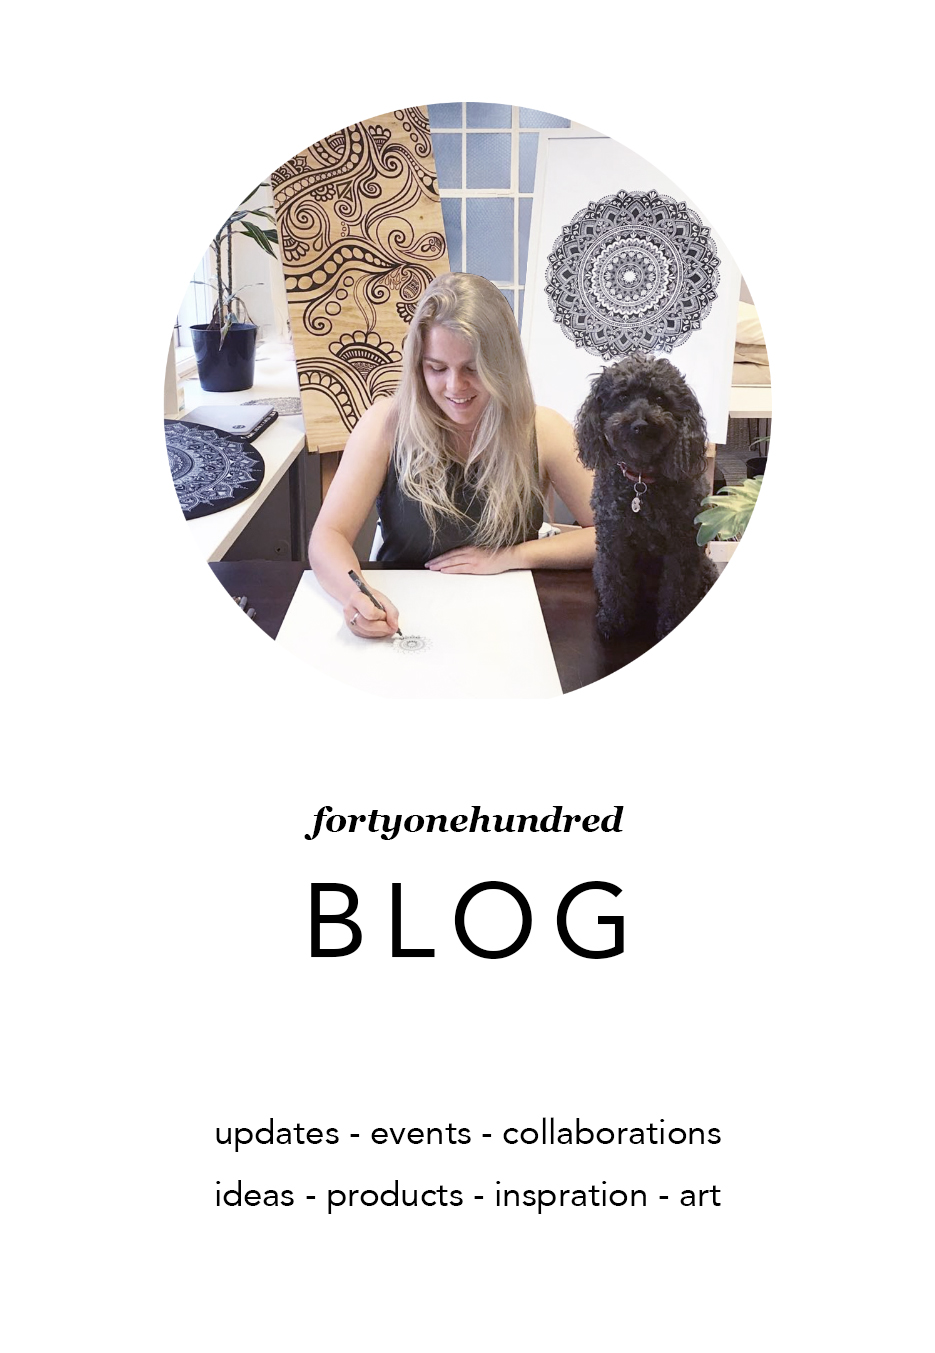 Blog Posts    - Peugeot Collaboration      - RHV Collaboration    - Denik Collaboration    - How I pack online orders    - What materials do I use?    - Digital Drawing    - Converse Collab    - Studio Vlog    - Mural Time Lapse   -  First Solo Exhibition   -  My Artist CV   -  February gifts   -  Sunrise Flow